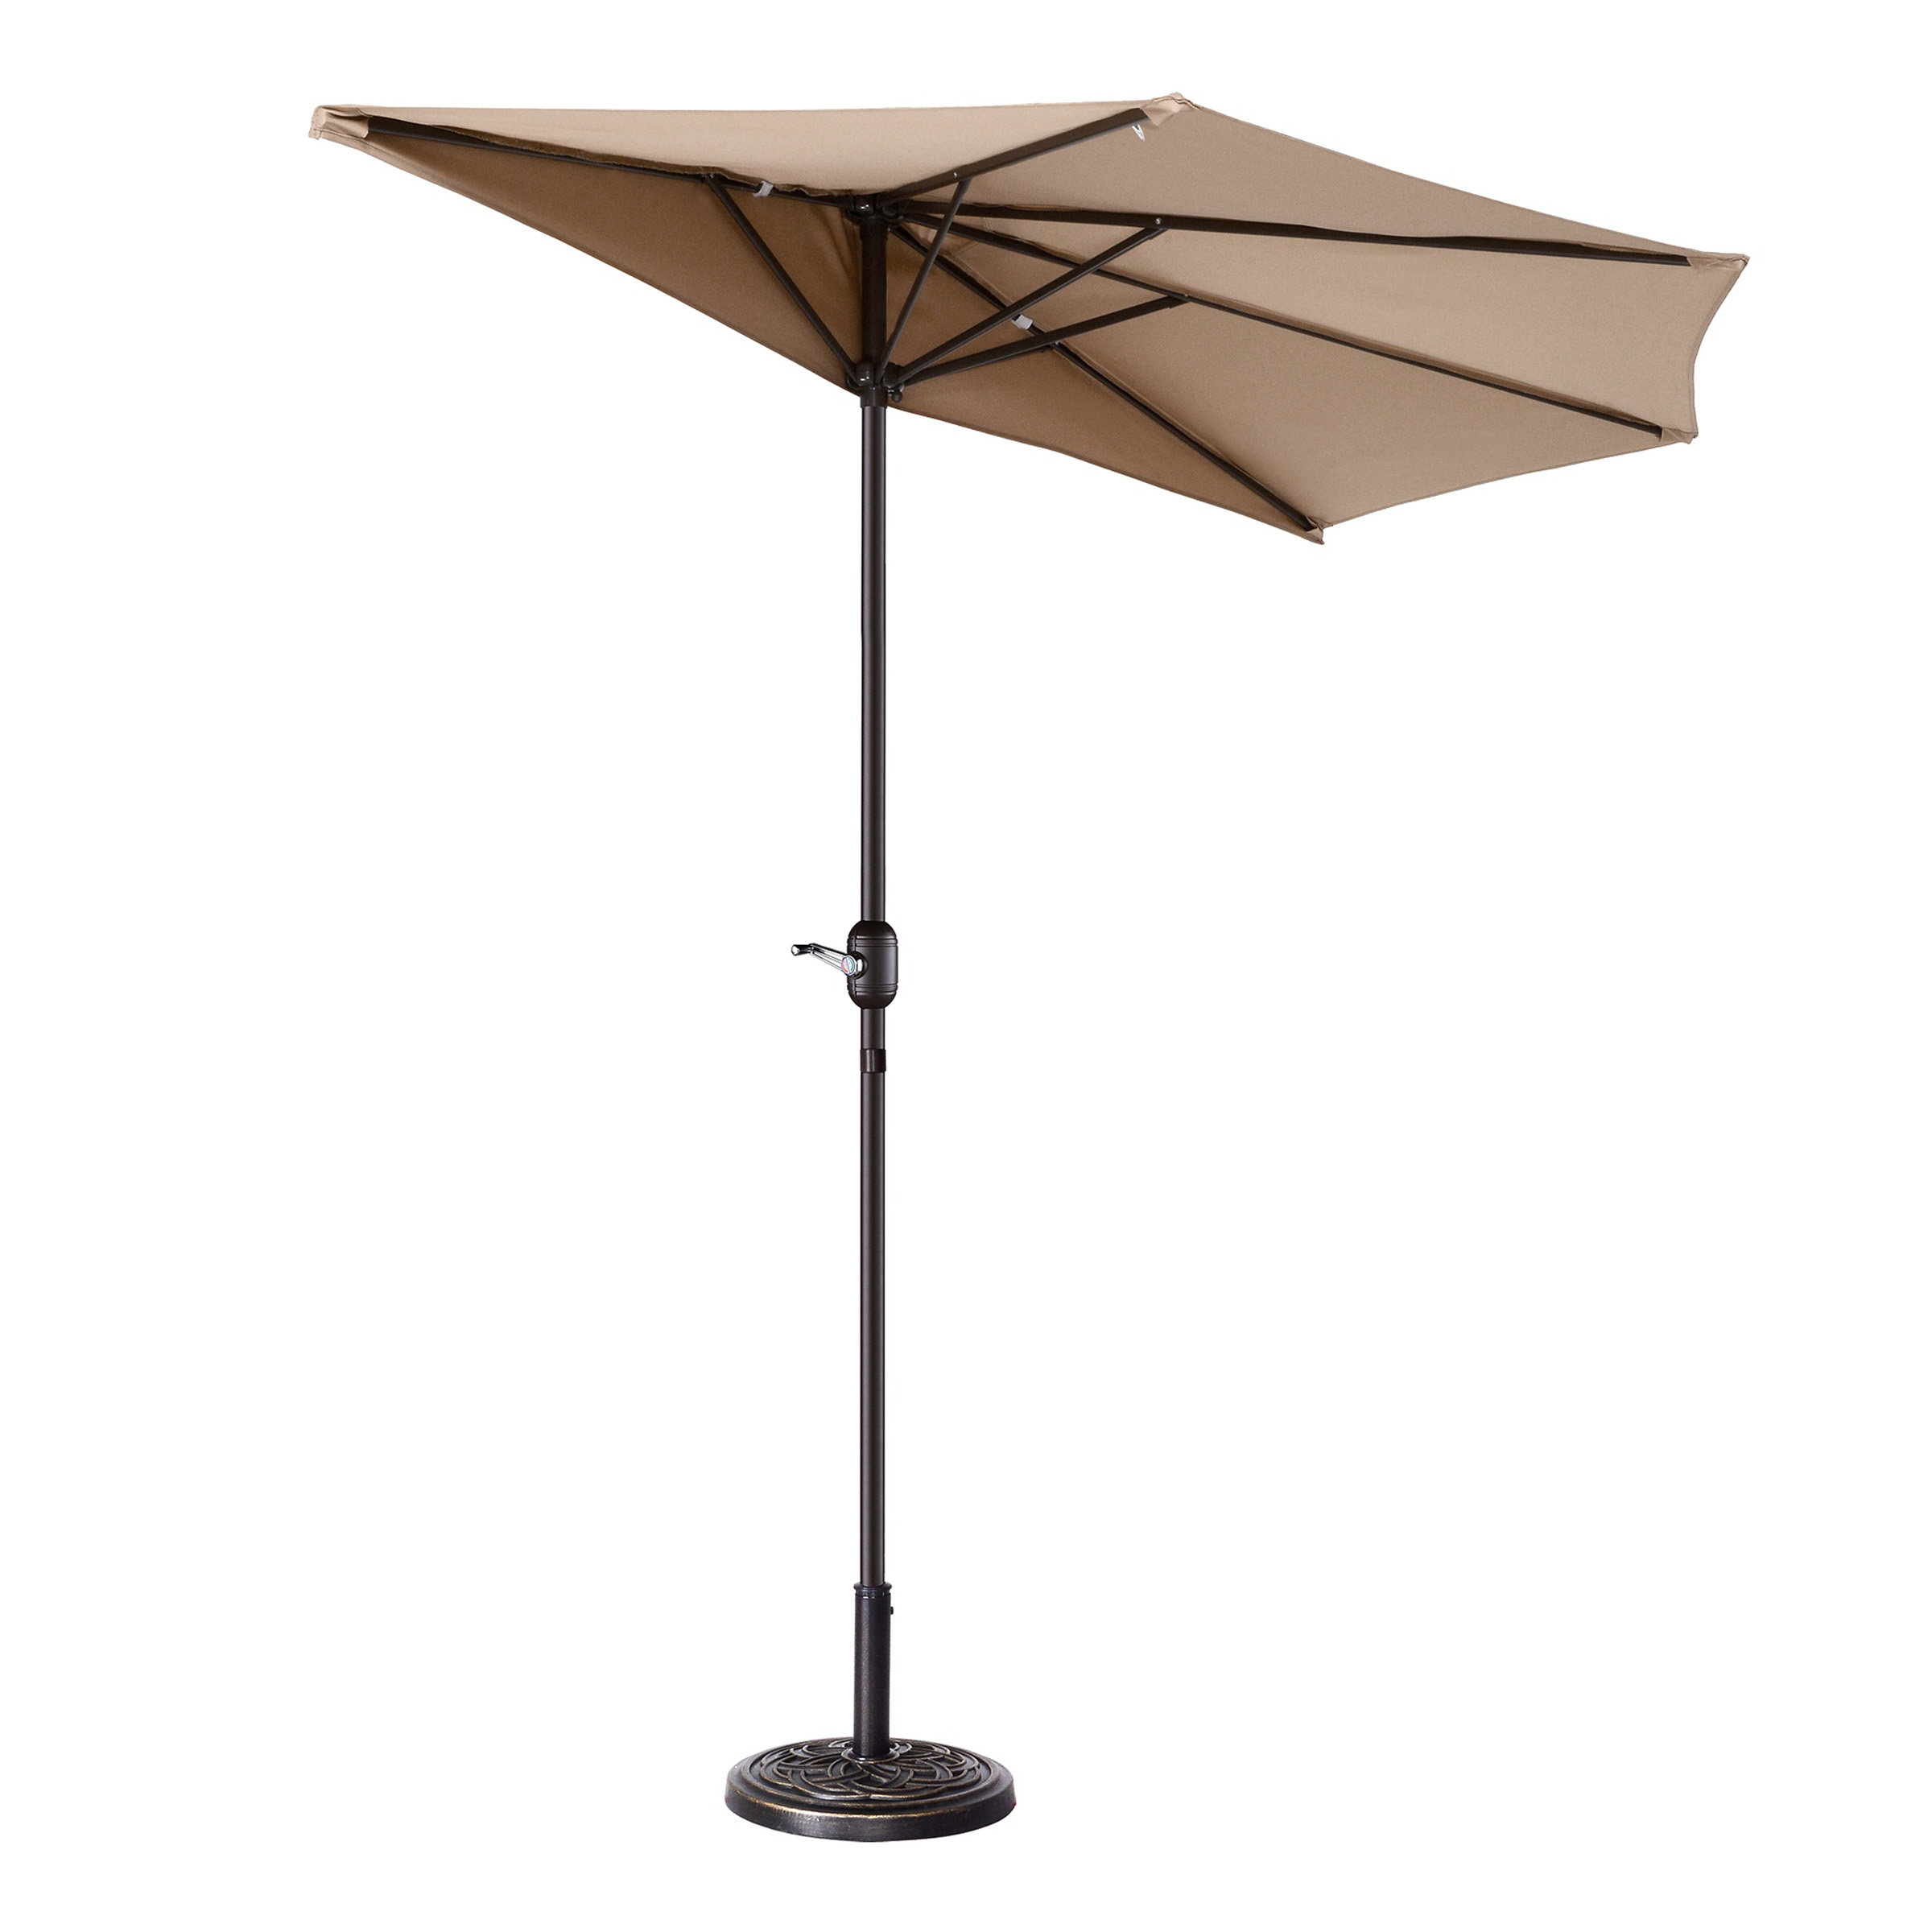 Sheehan Market Umbrellas In 2020 Colburn Half 9' Market Umbrella (View 11 of 20)